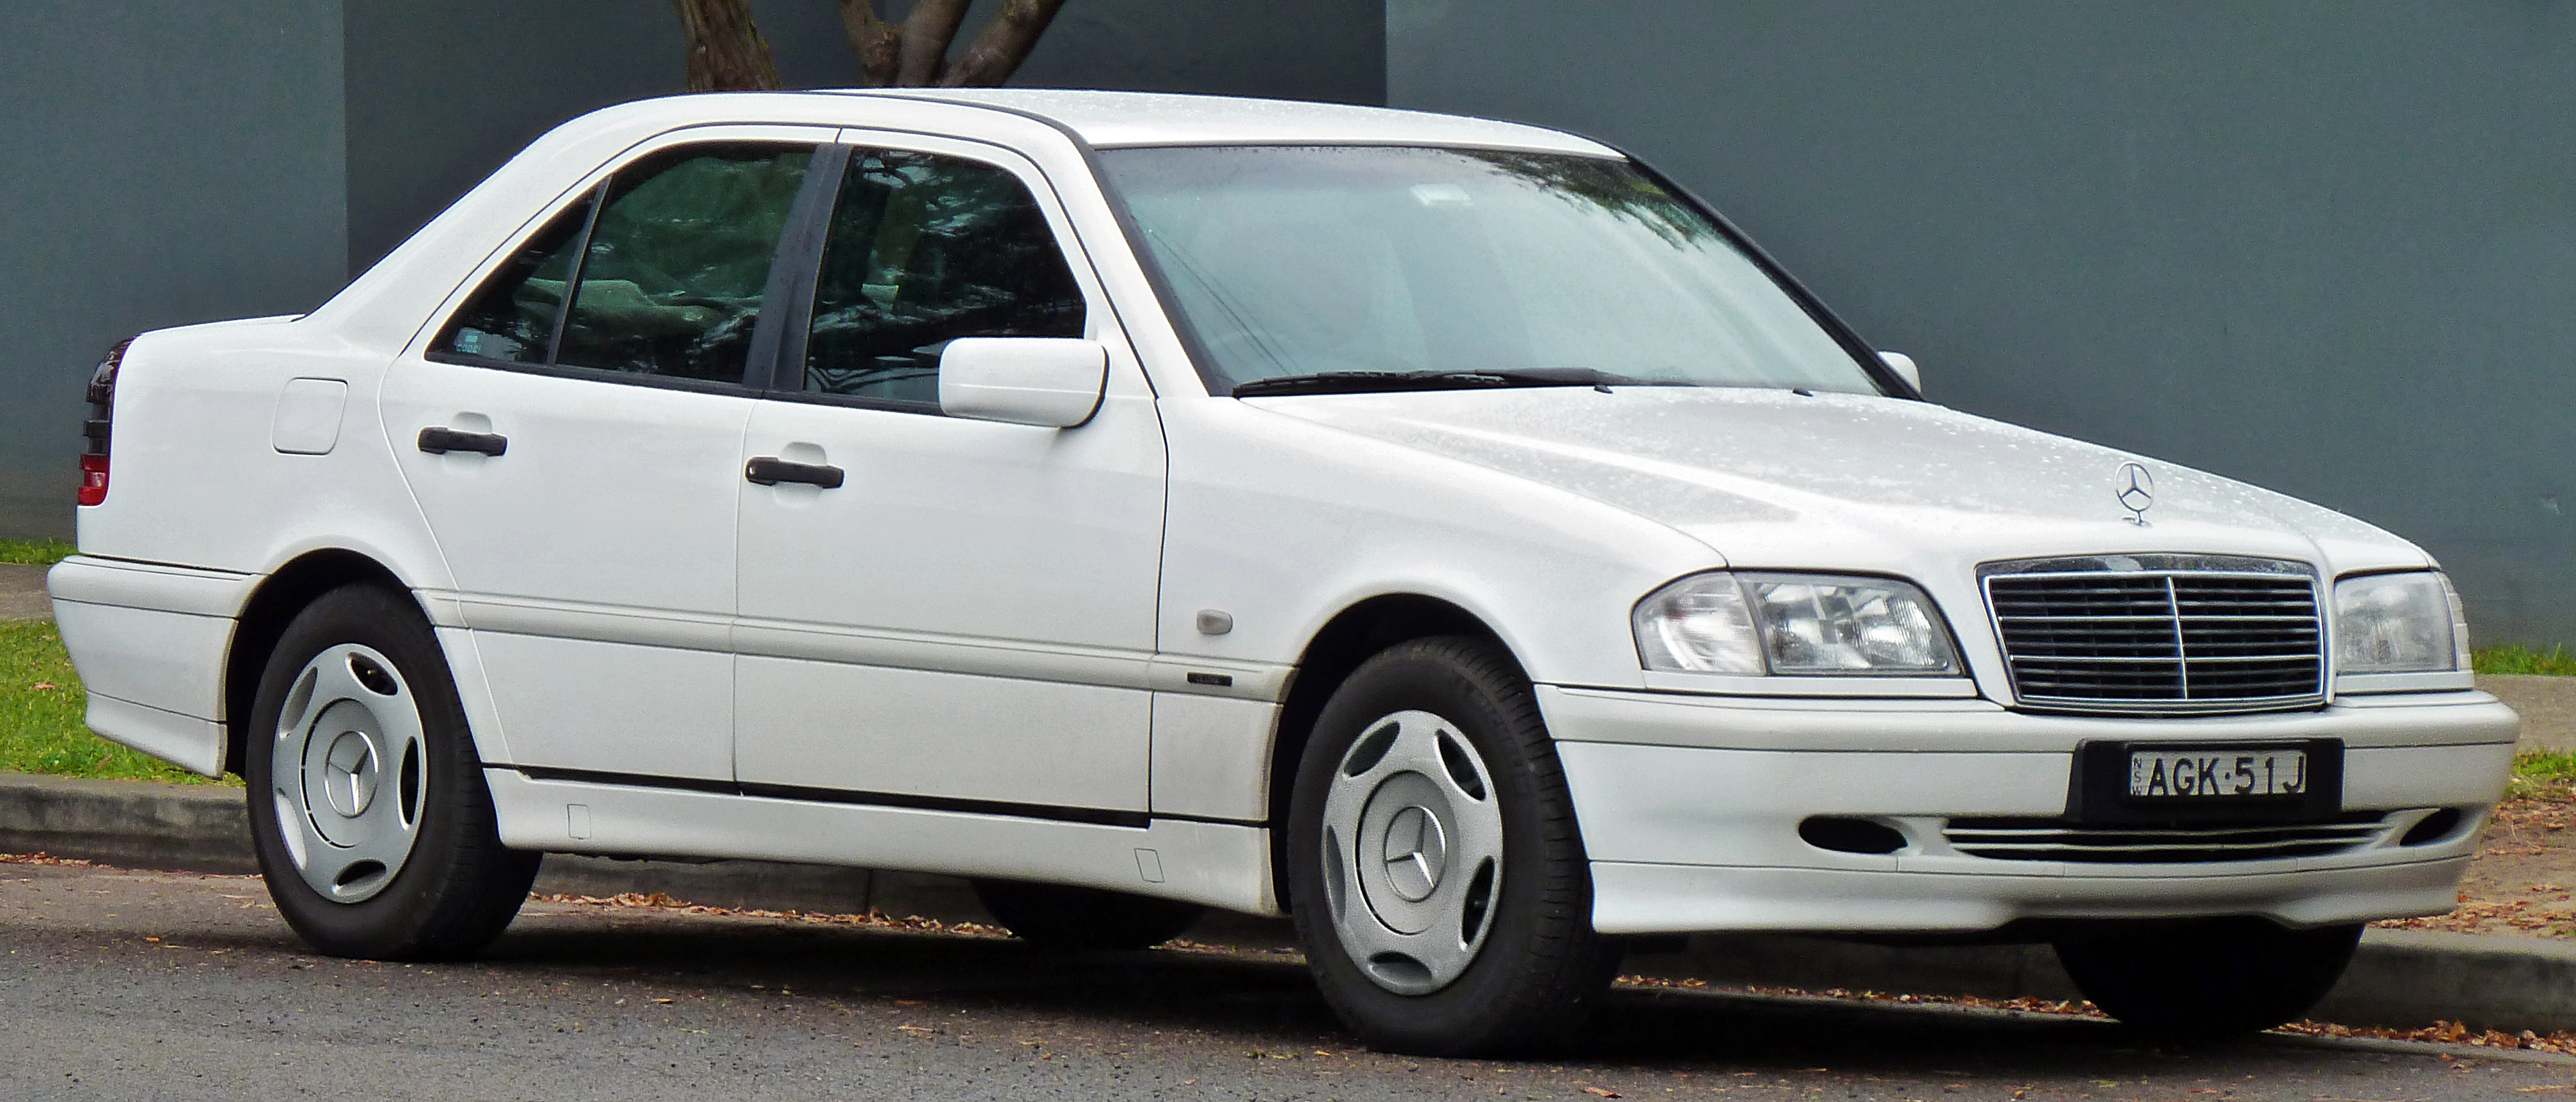 1994 mercedes benz c class information and photos for Explain the different classes of mercedes benz